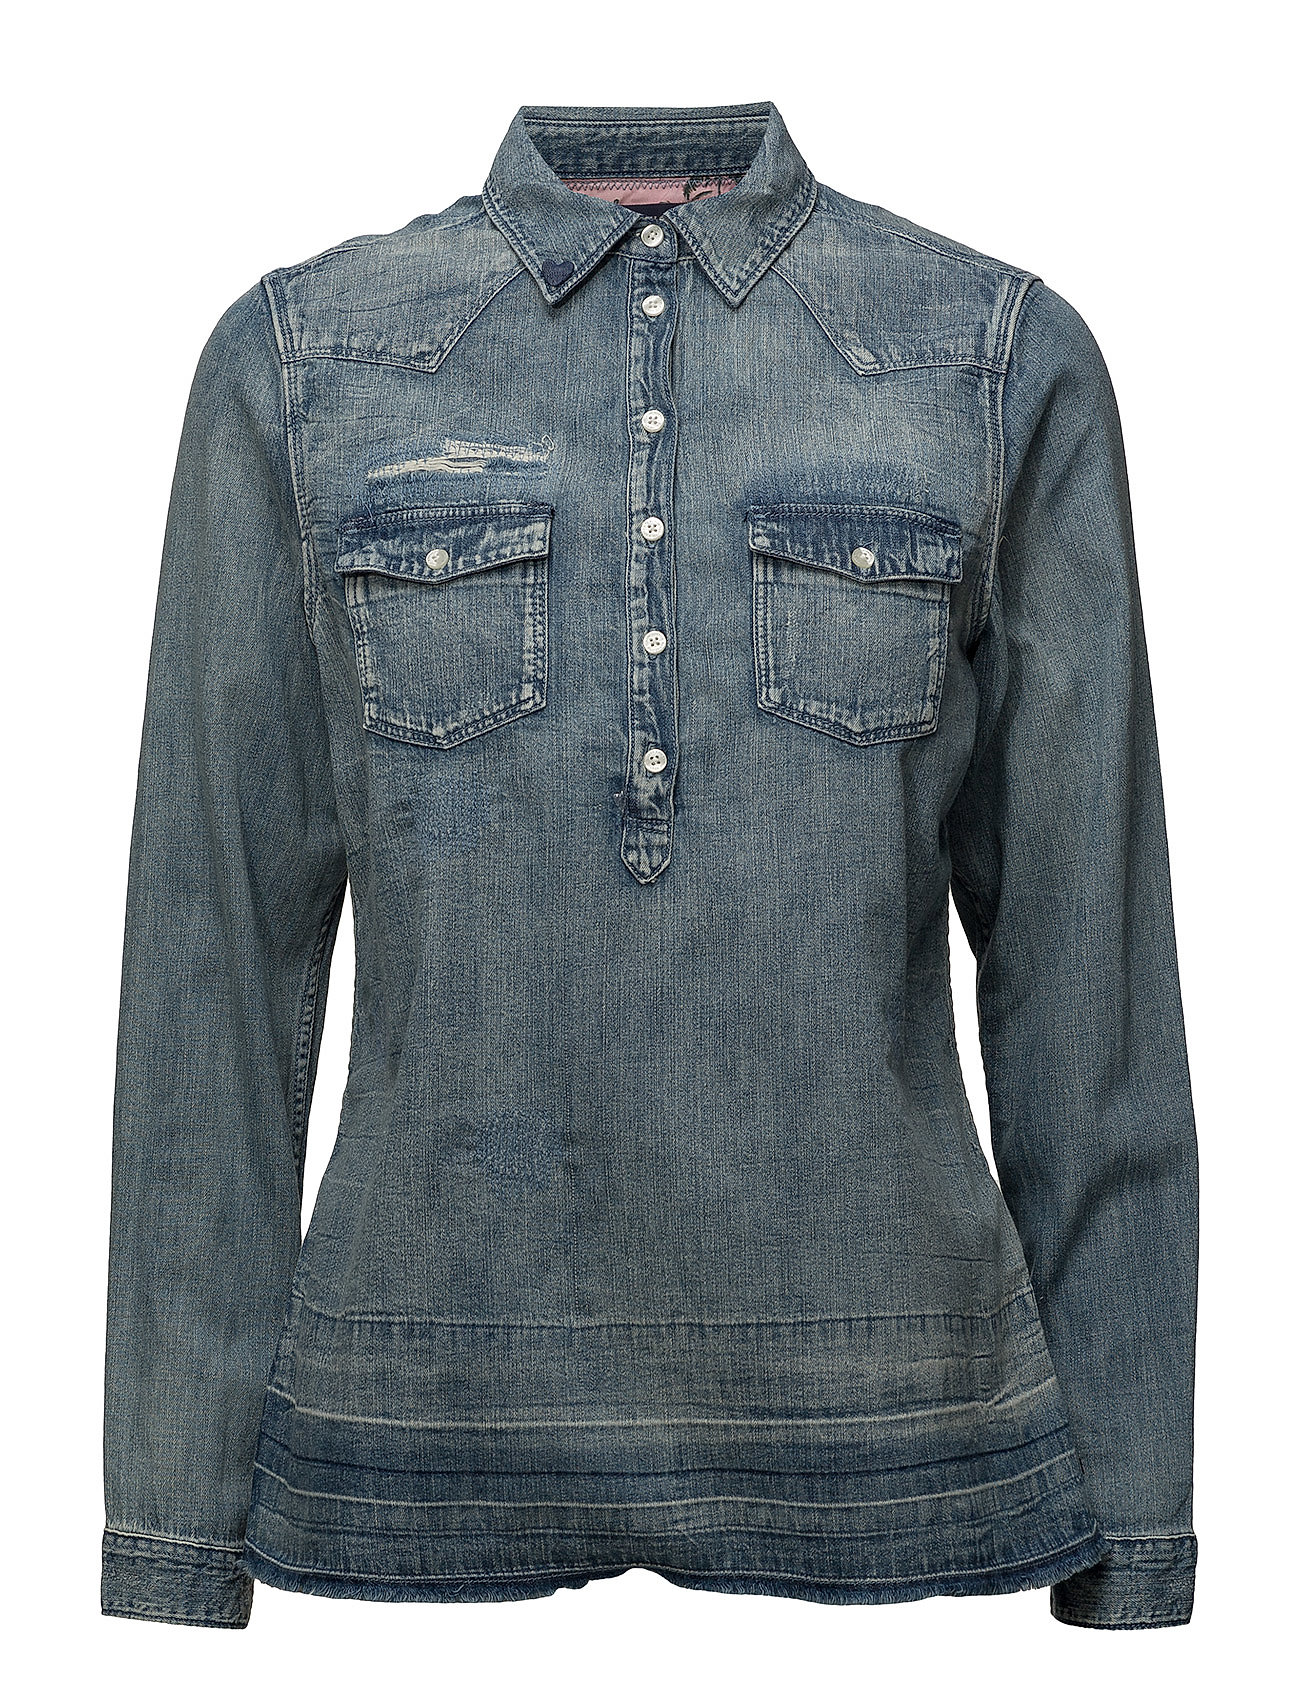 Scotch & Soda Denim blouse with over-dye - 51 INDIGO